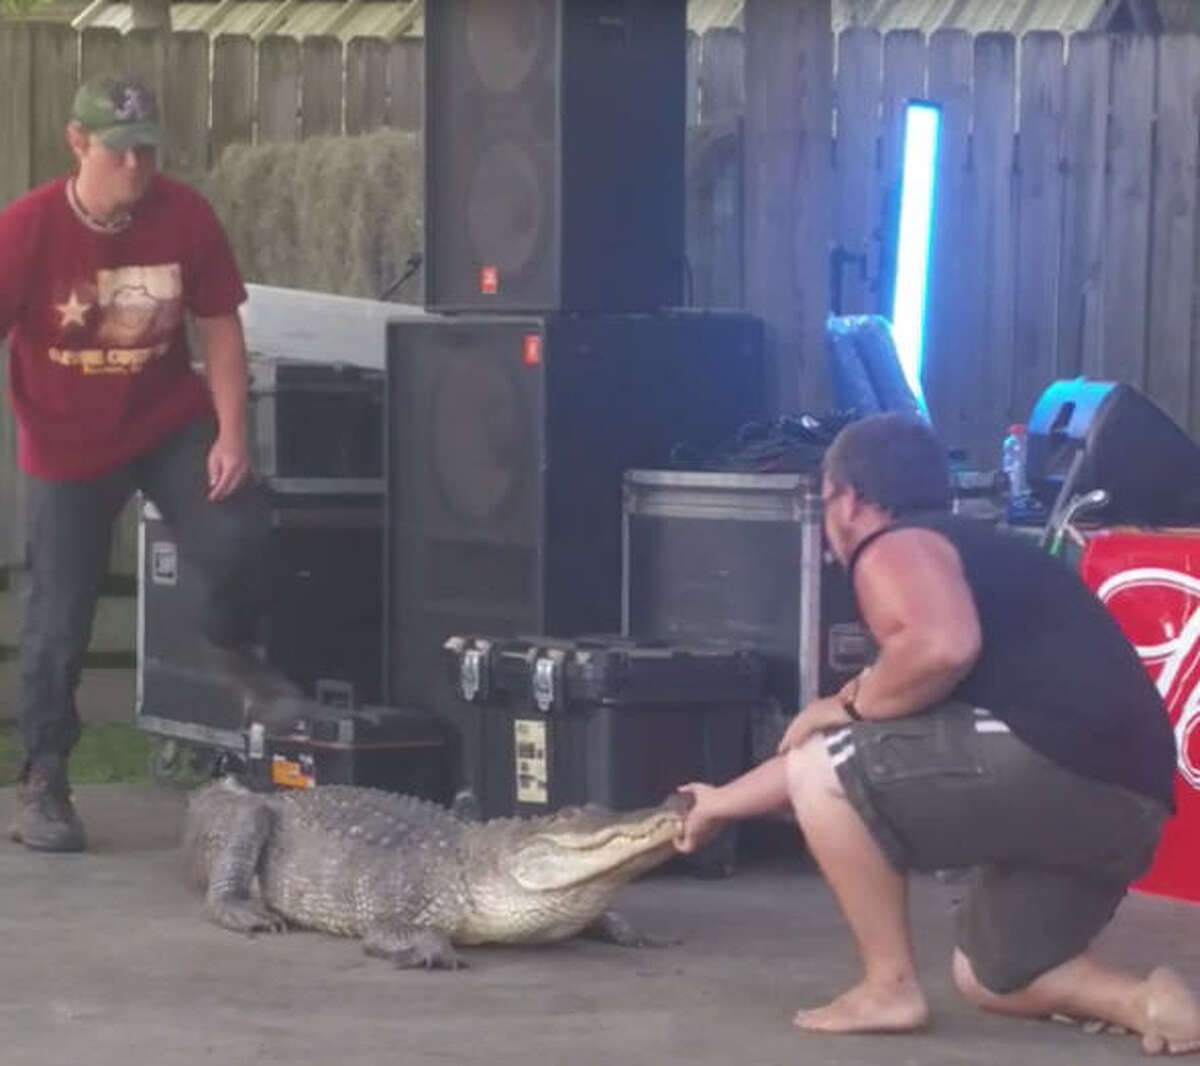 An alligator wrangler in an ironic t-shirt is bitten by an alligator at the Olde Town Spring Texas Crawfish & Music Festival.